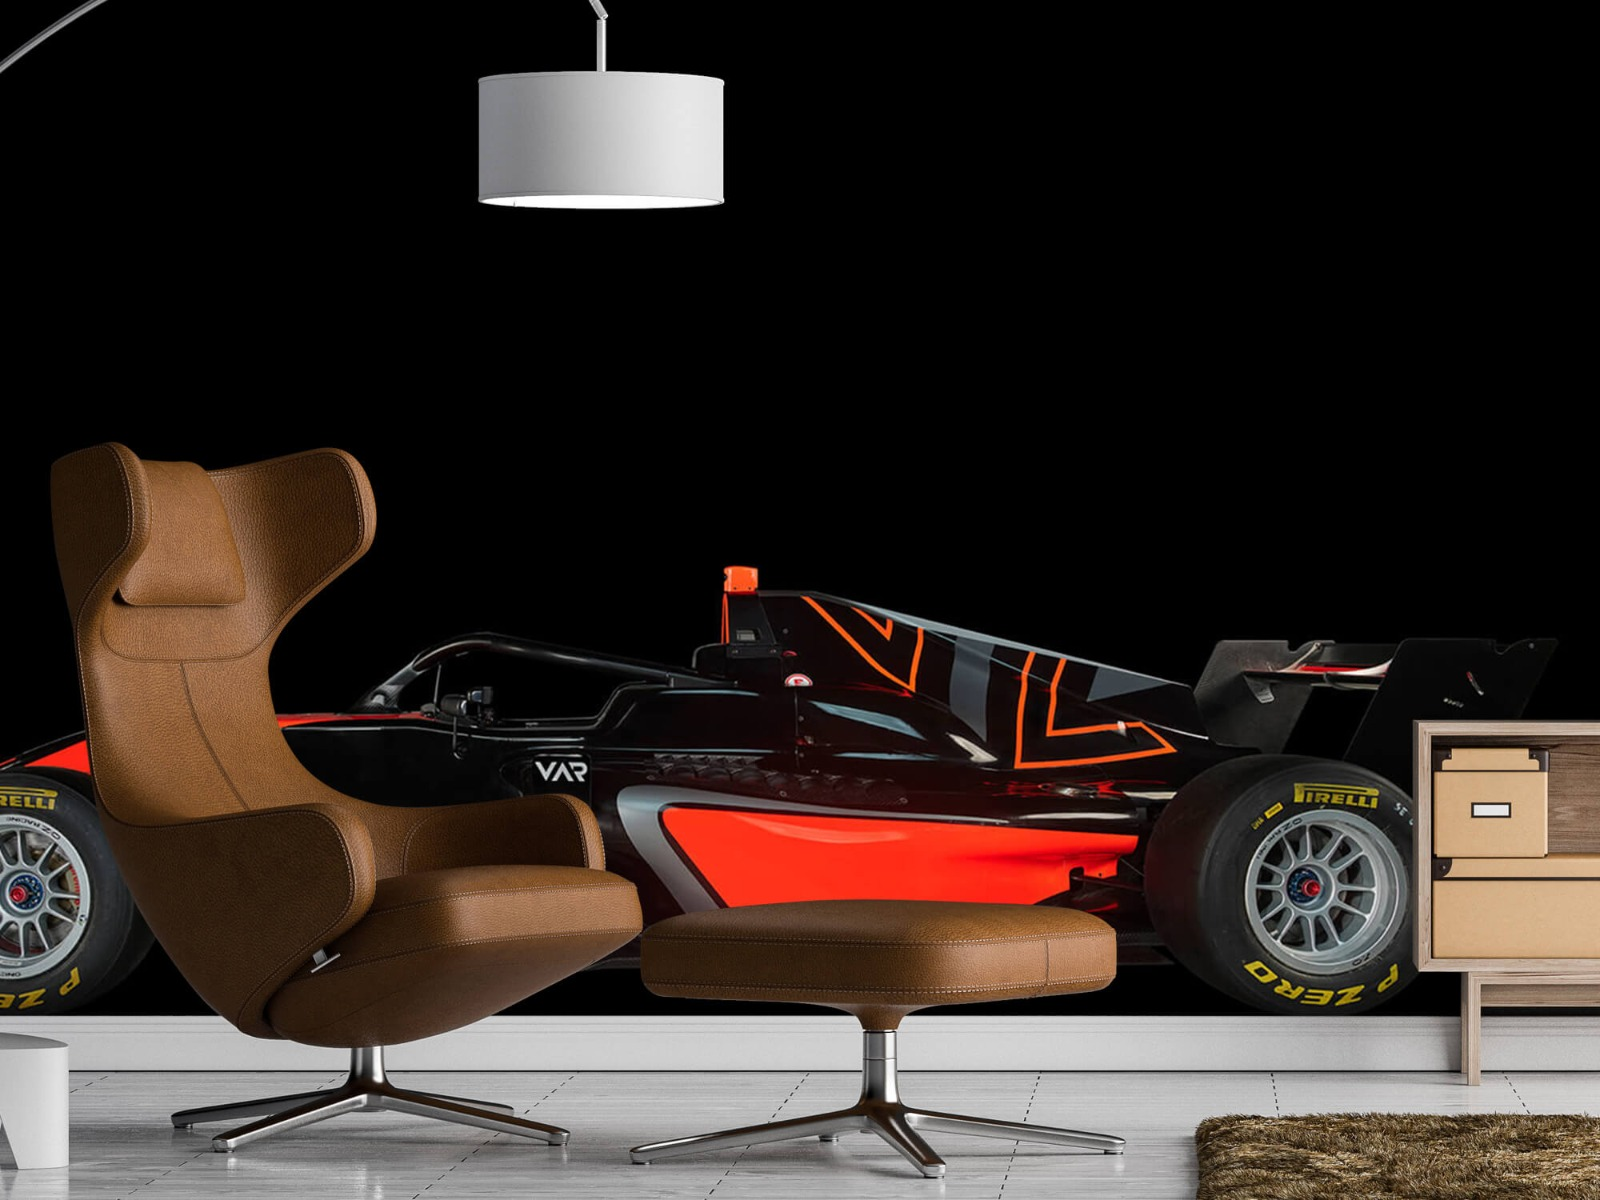 Sportauto's - Formule 3 - Lower side view - dark - Tienerkamer 19